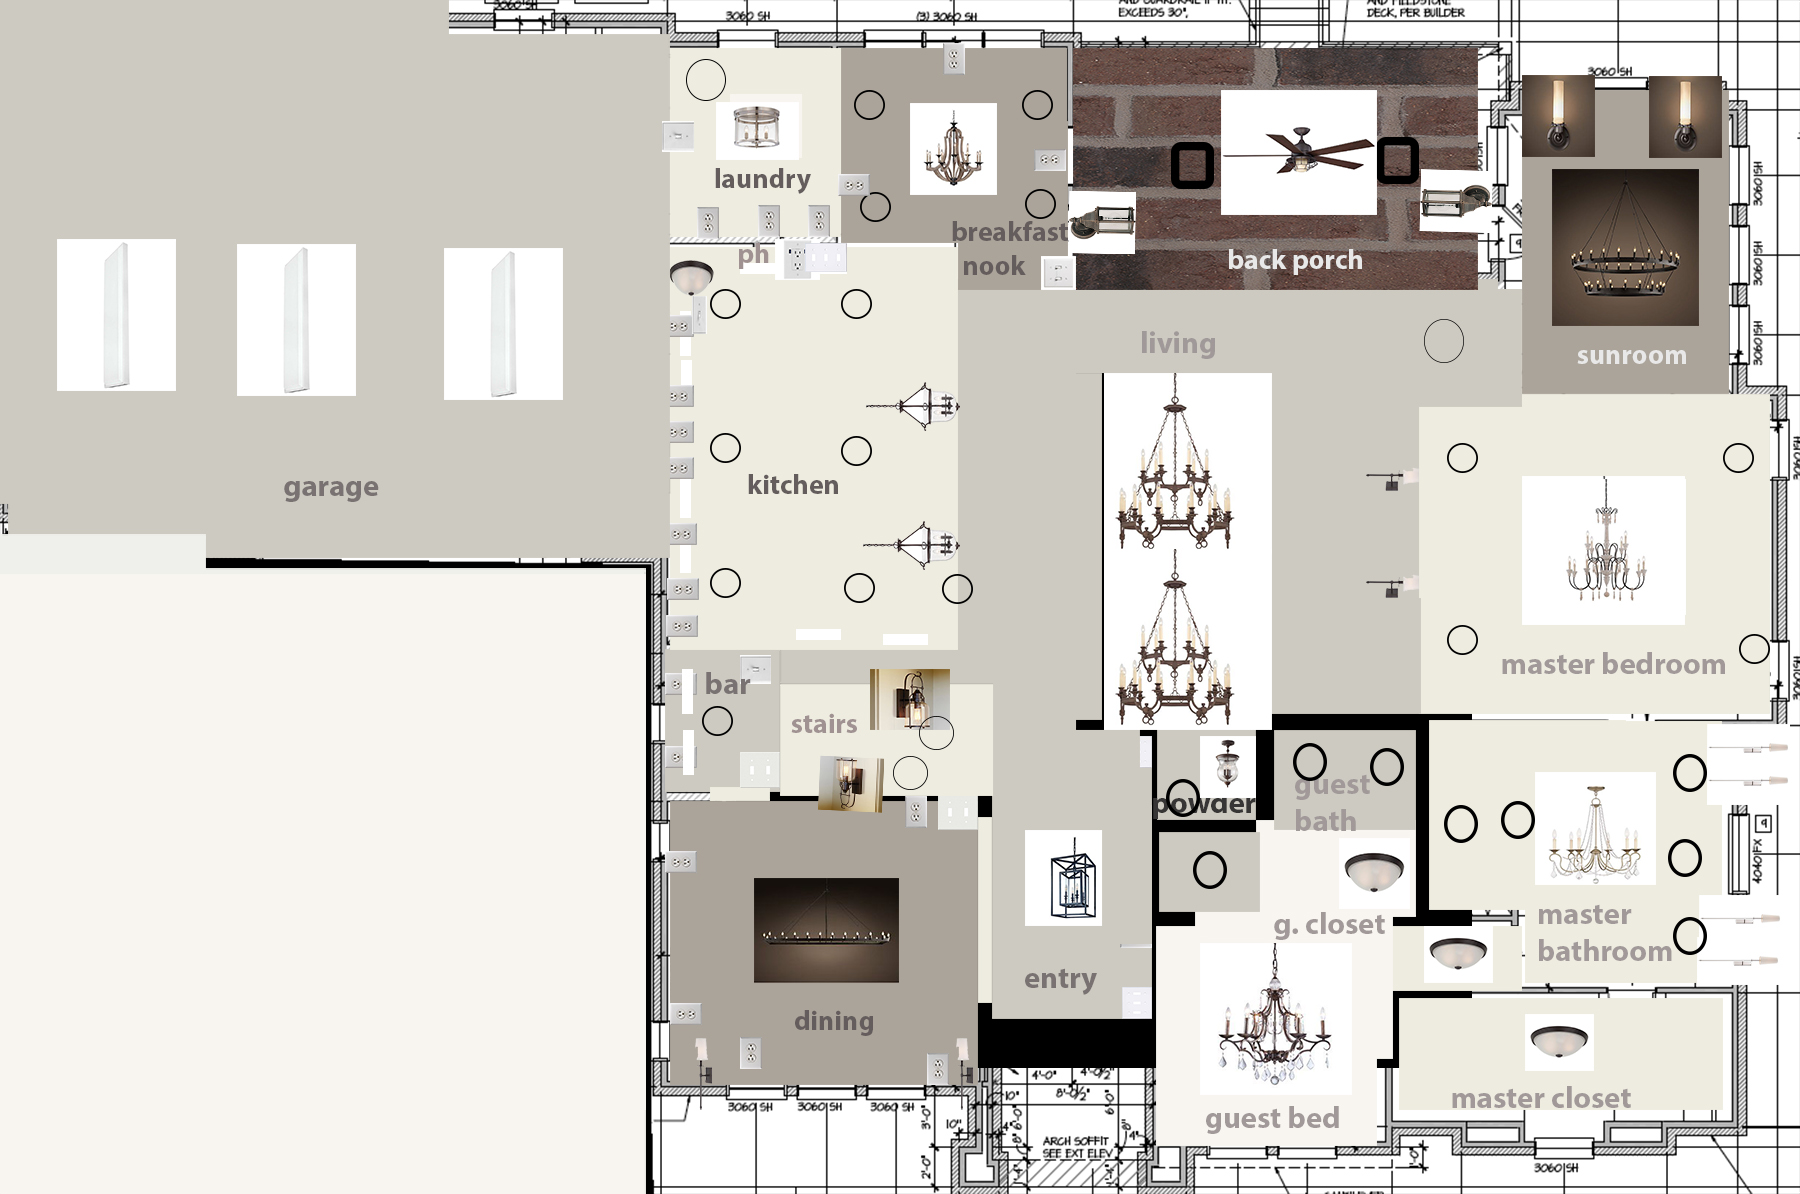 New Home Lighting Layout Floor Plan